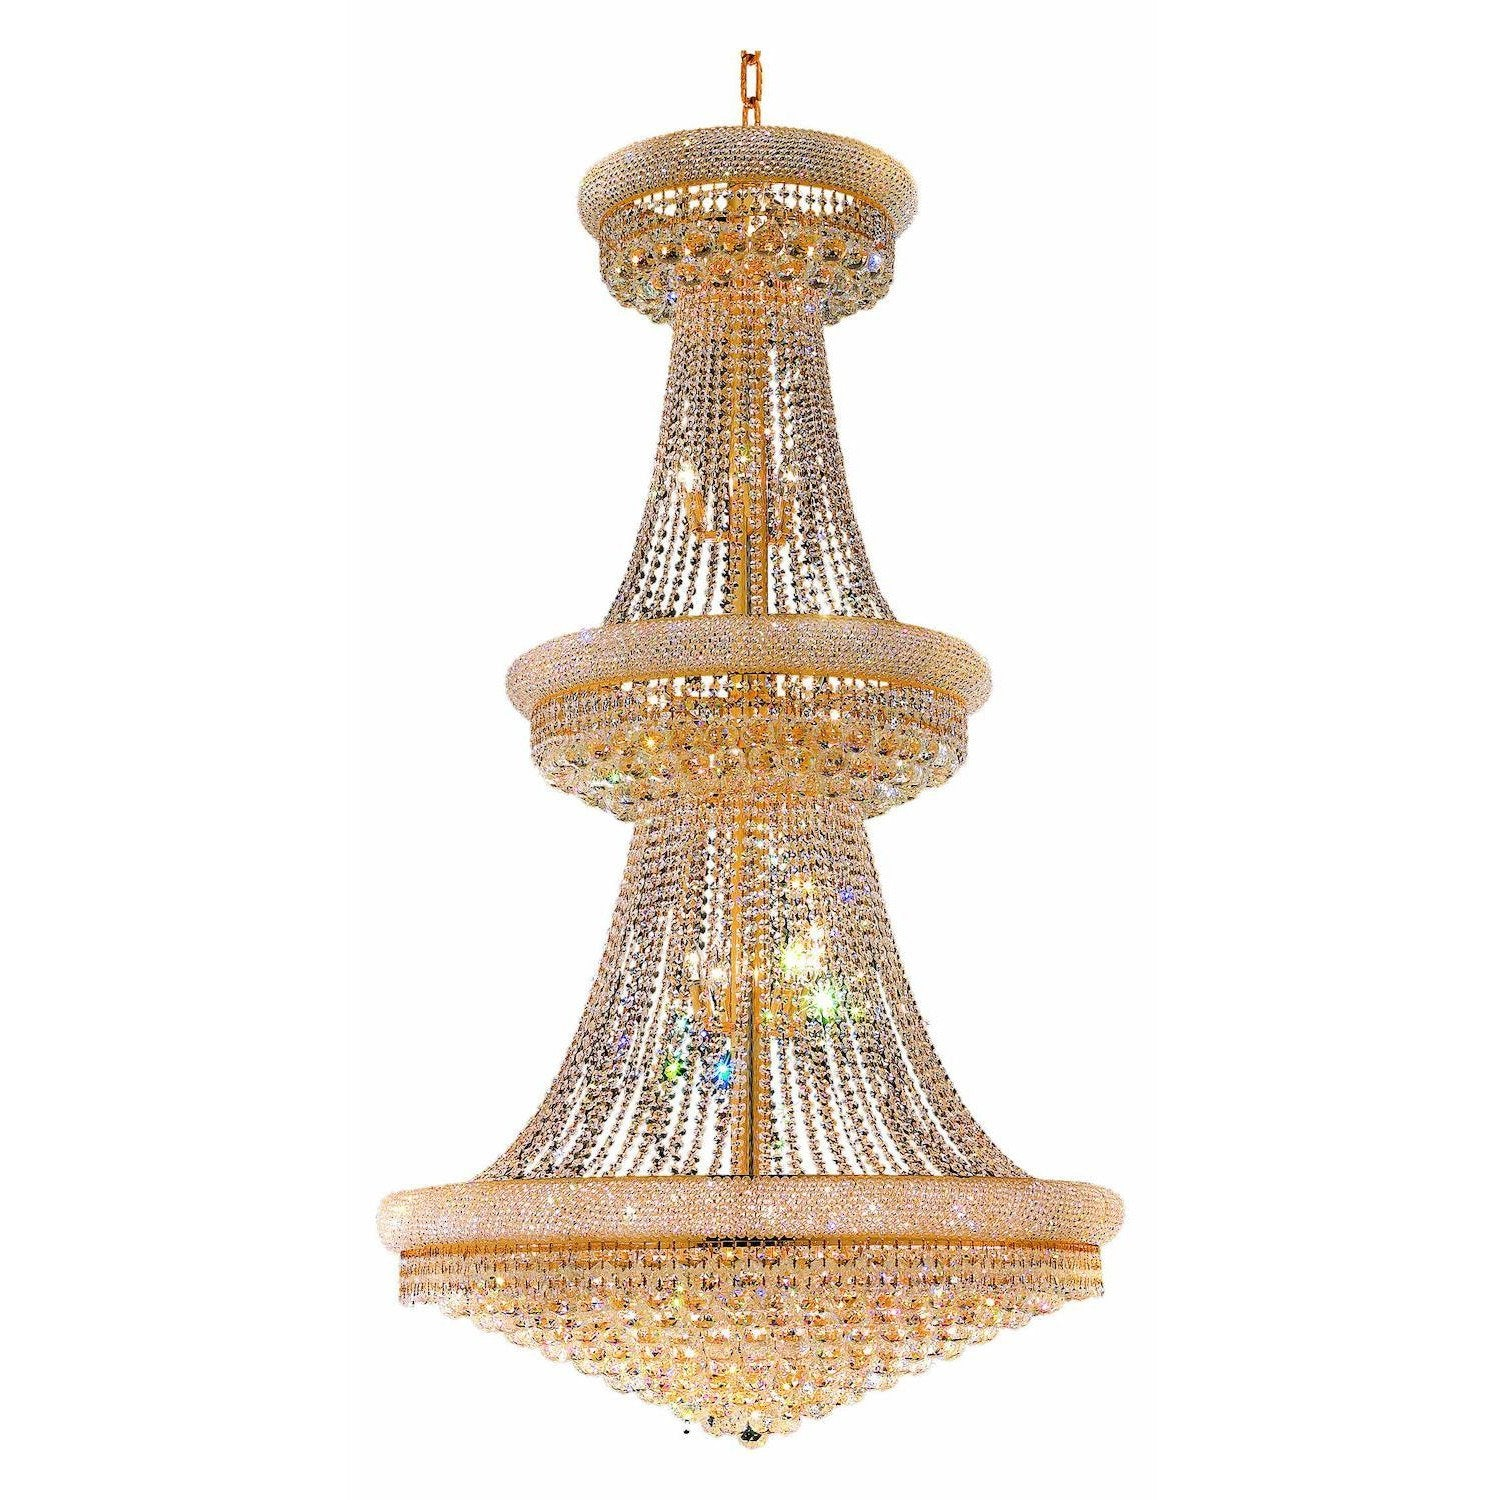 CWI Lighting Chandeliers Gold / K9 Clear Empire 38 Light Down Chandelier with Gold finish by CWI Lighting 8001P42G